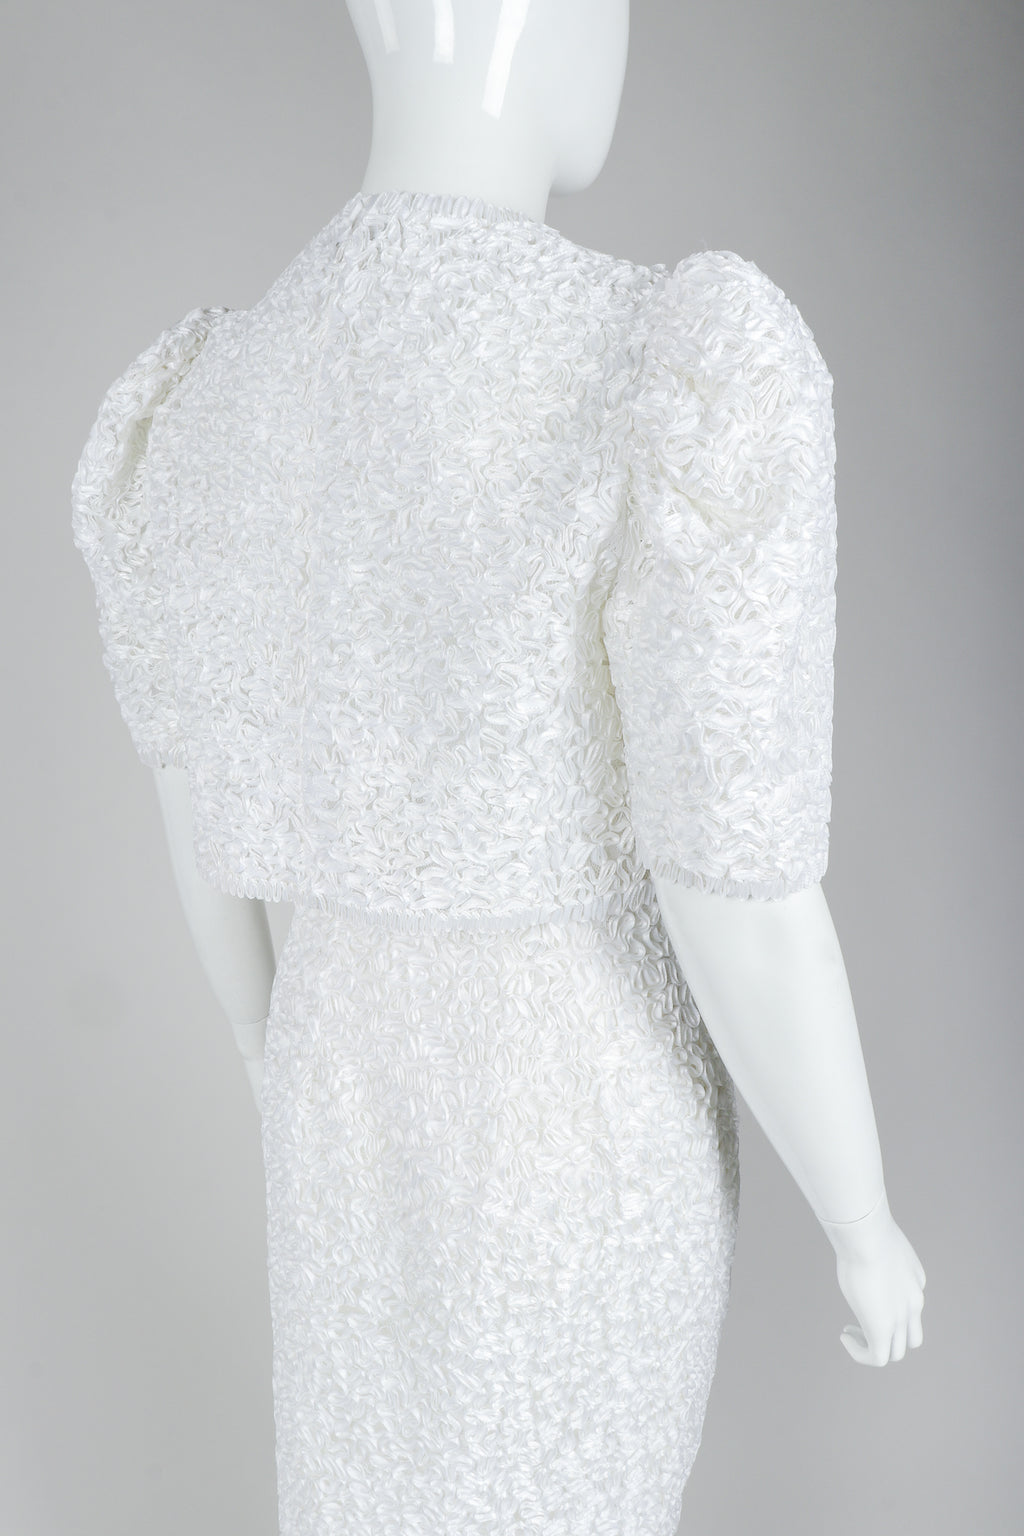 Victor Costa White Ribbon Lace Jacket and White Skirt, Back Angle on Mannequin at Recess